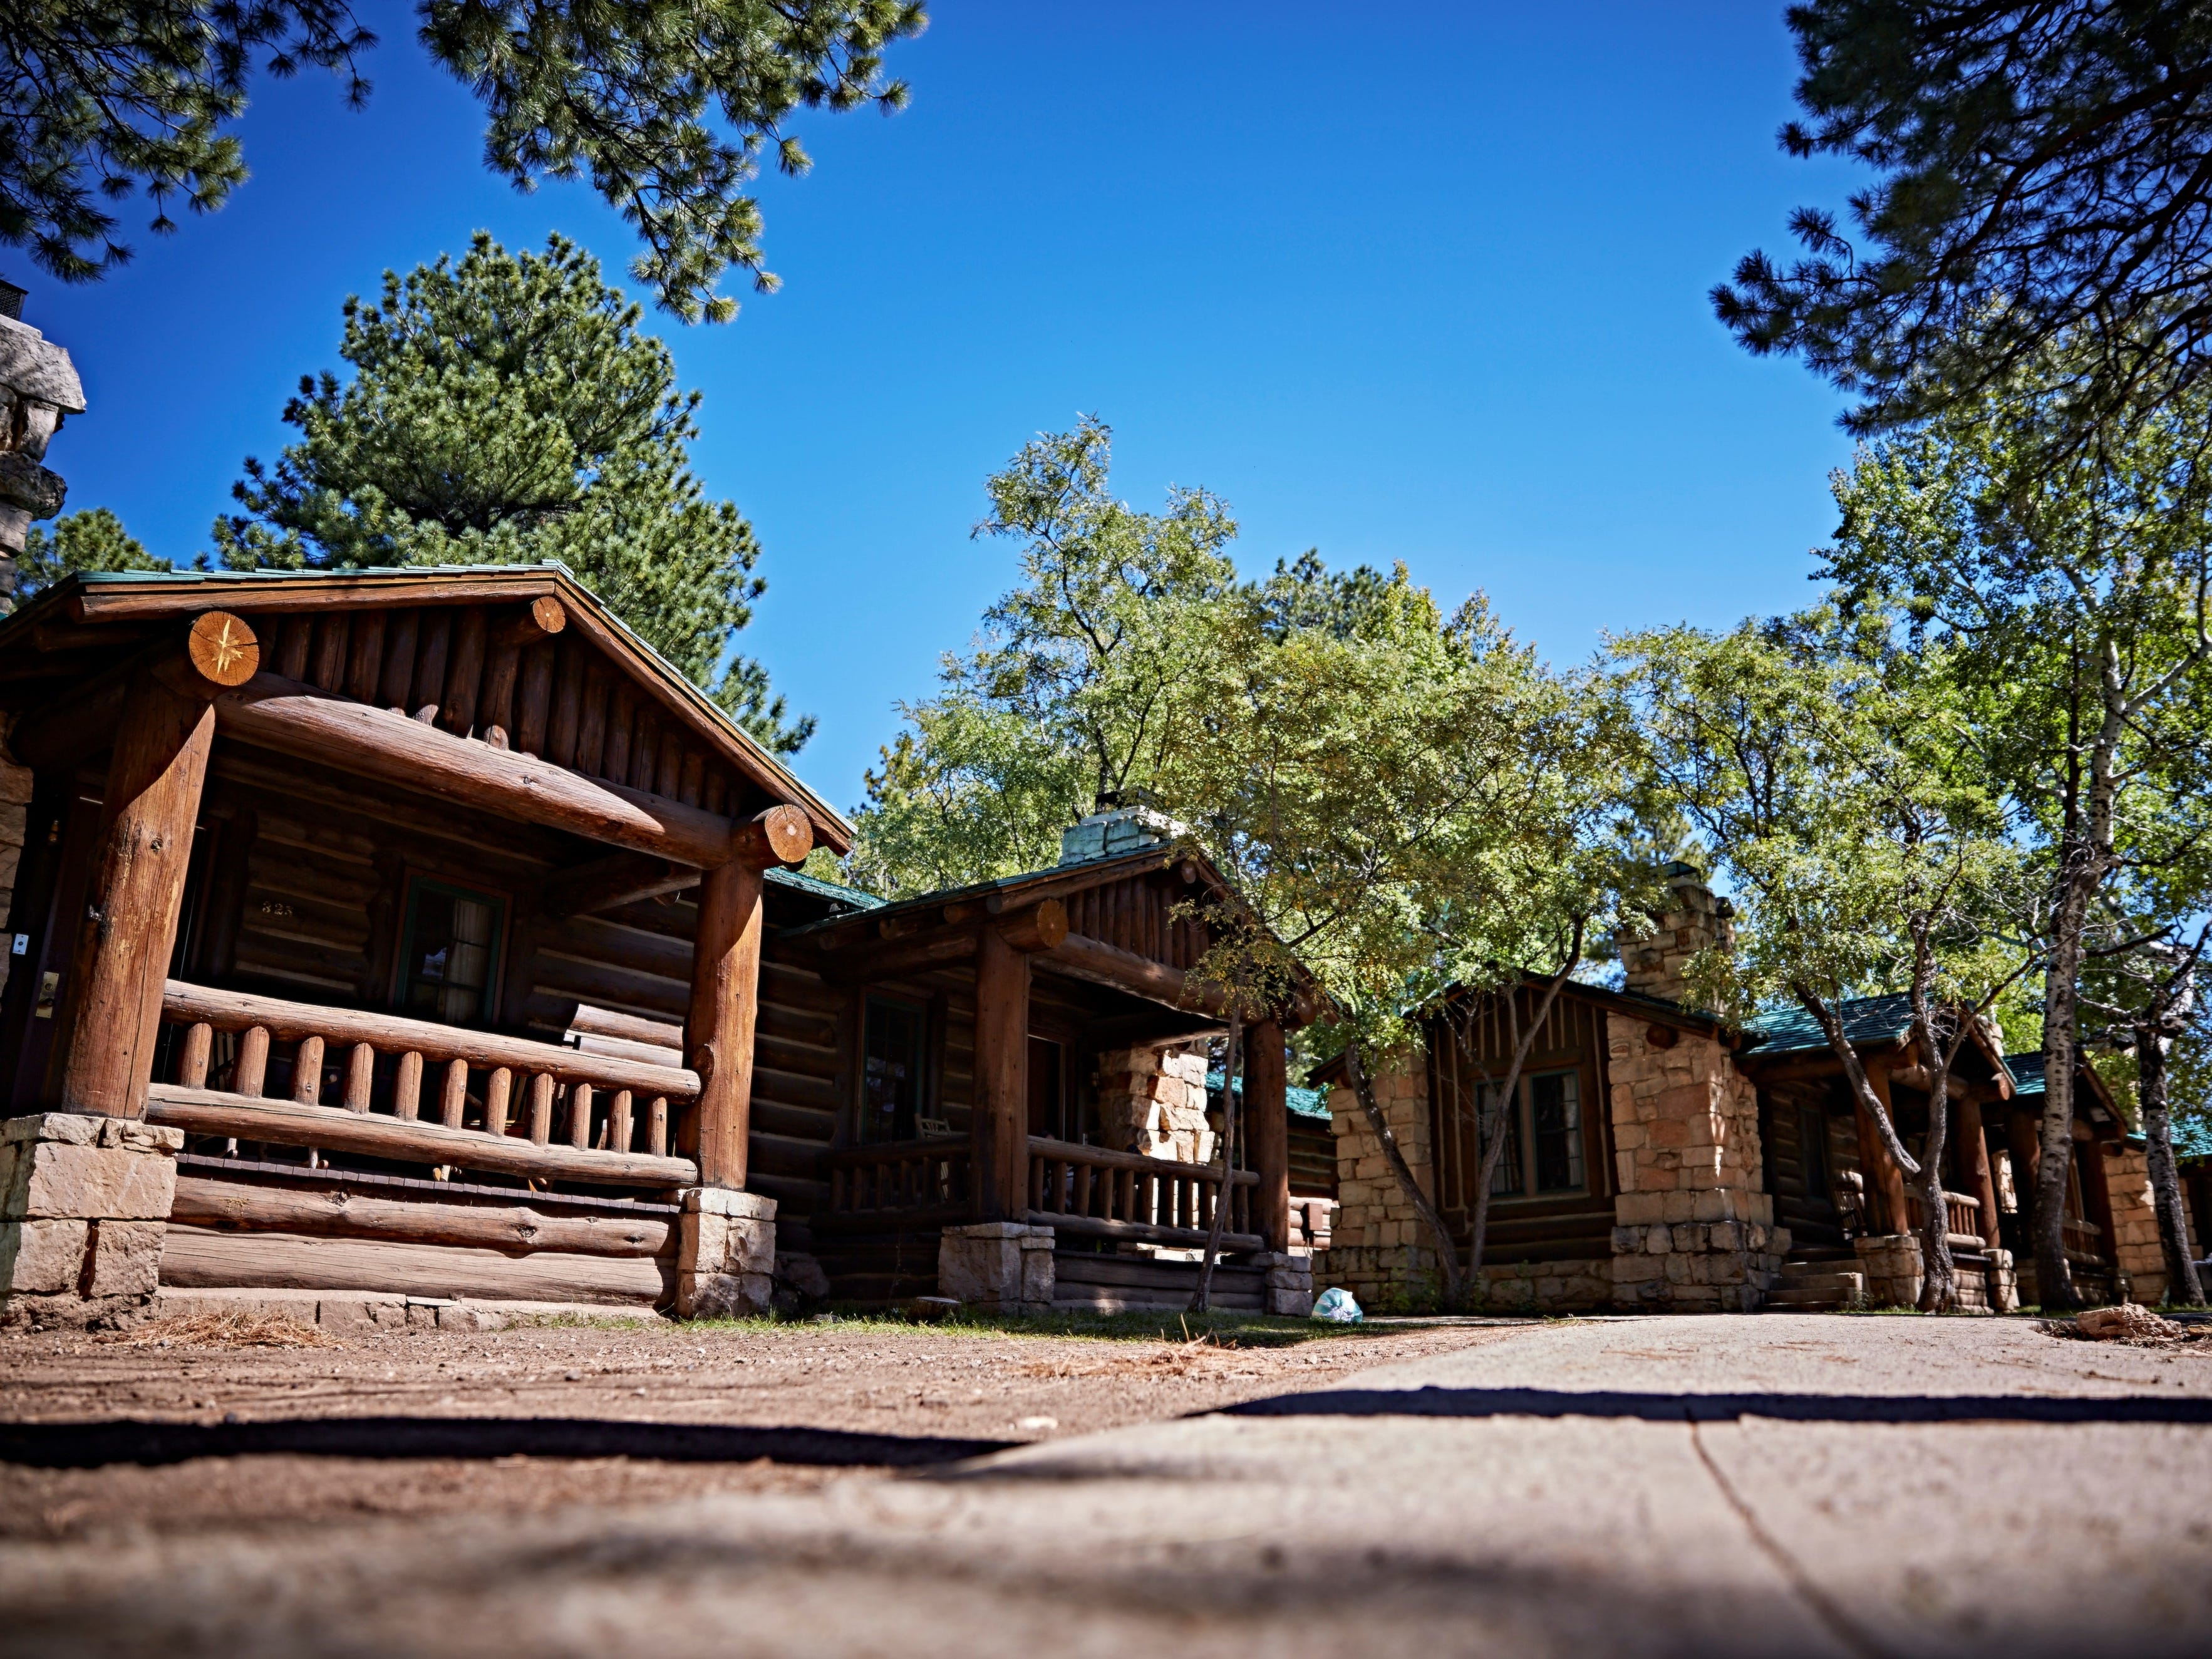 Visitors to the North Rim may camp or stay in one of the many cabins.